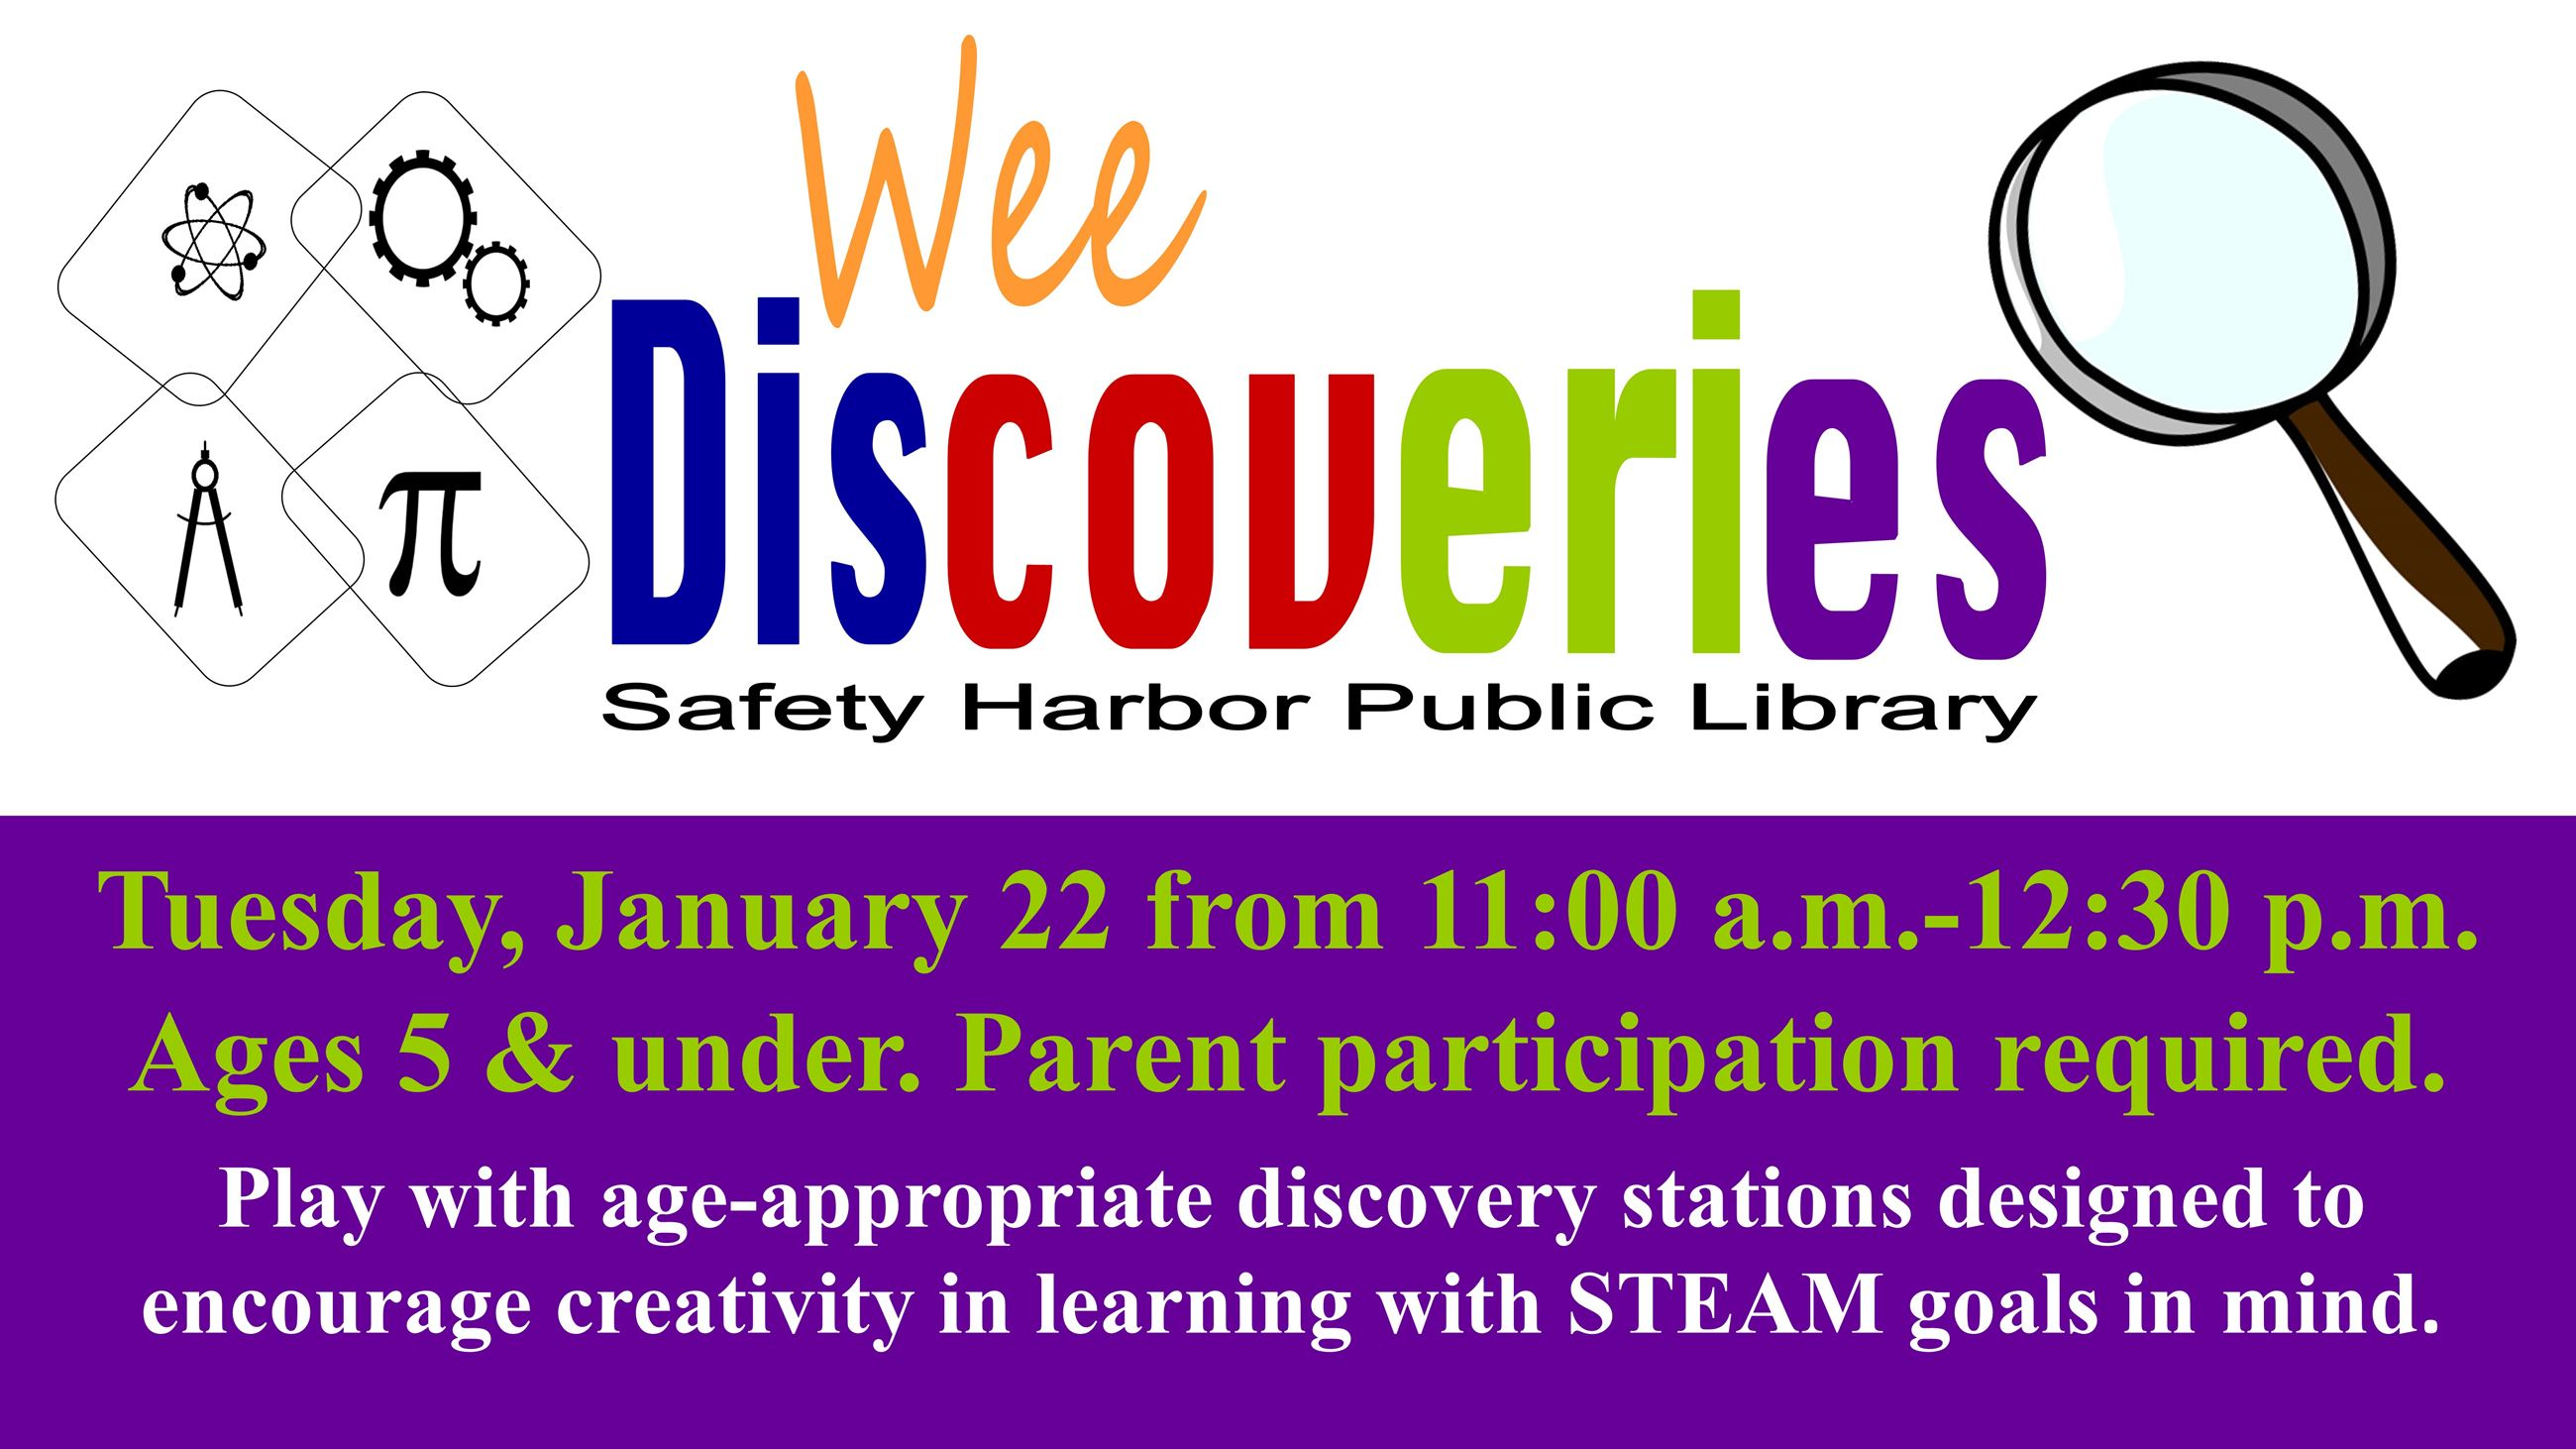 Wee Discoveries. January 22 from 11 a.m. to 12:30 p.m. Ages 5 & under. Parent participation required